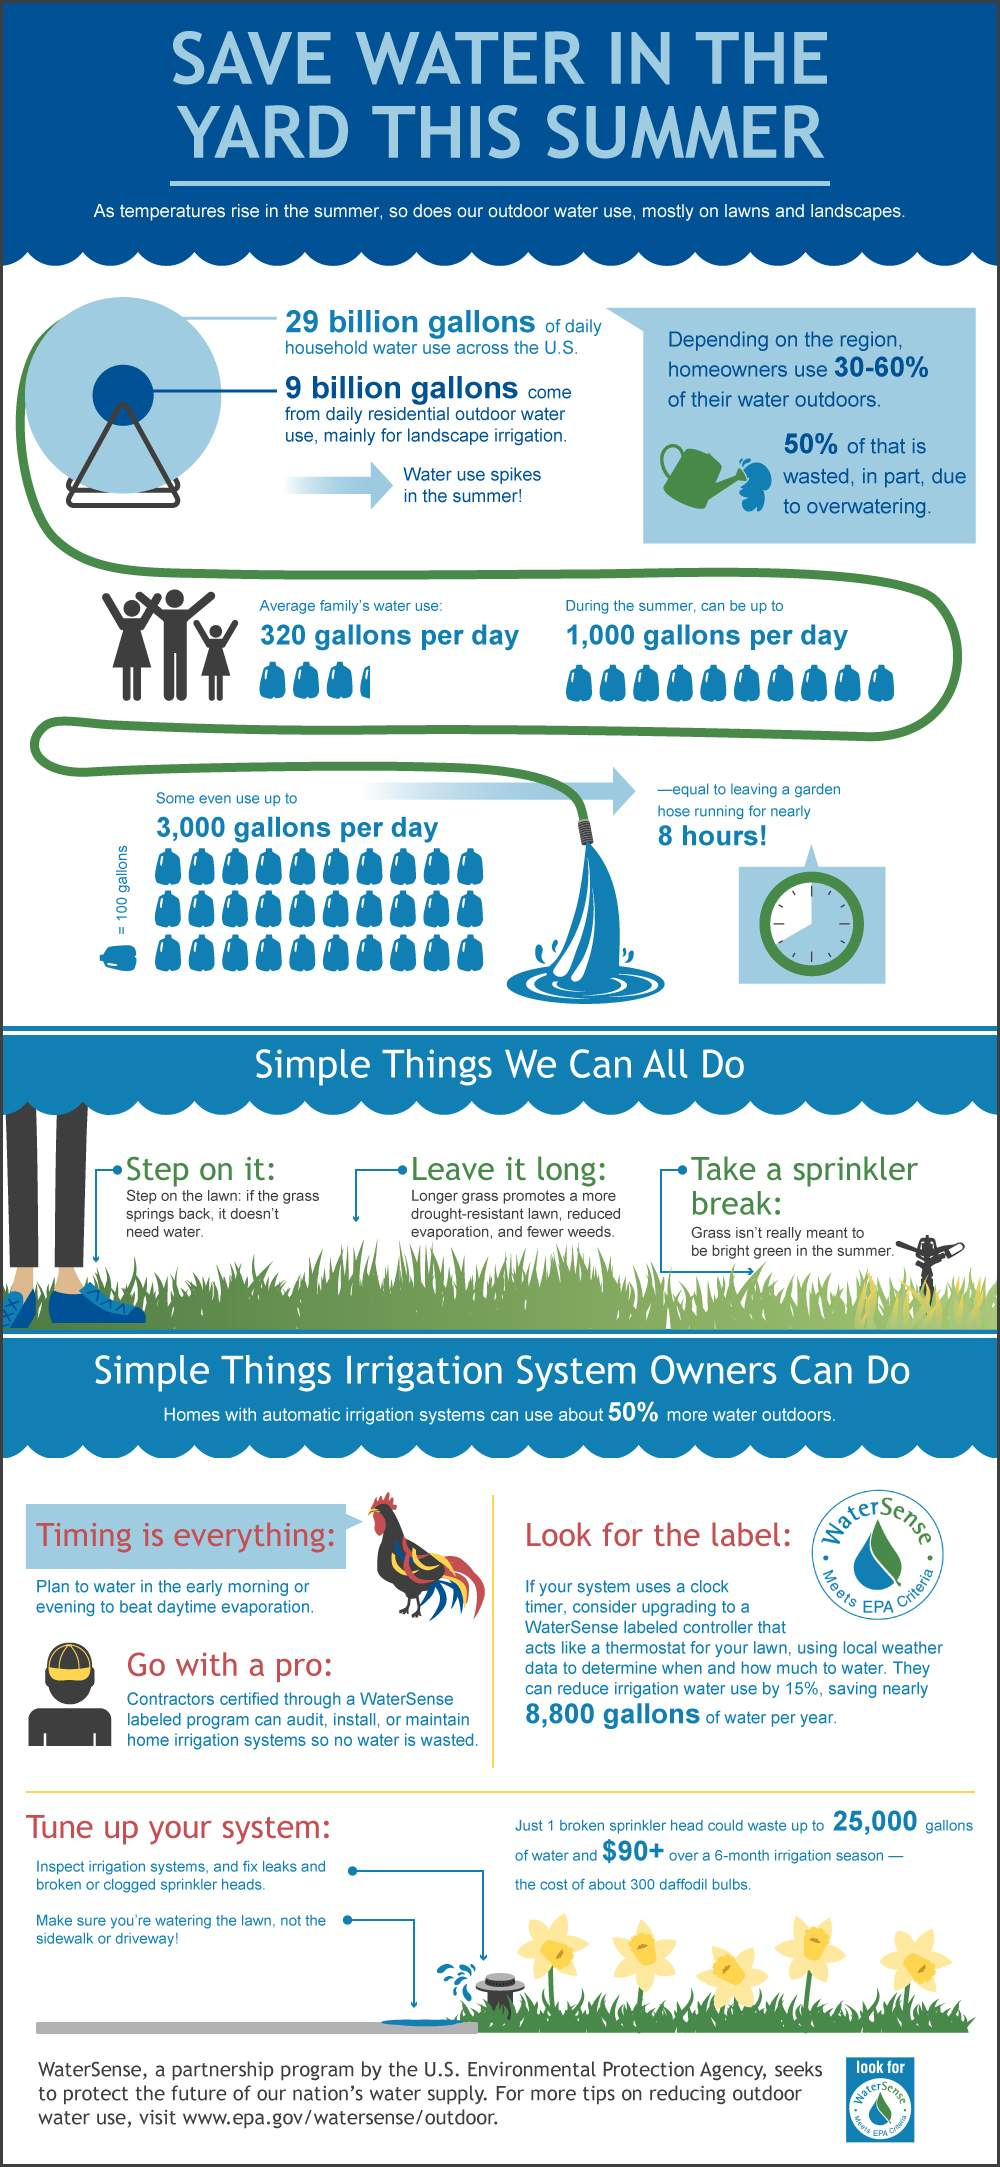 Save Water in the Yard This Summer EPA WaterSense